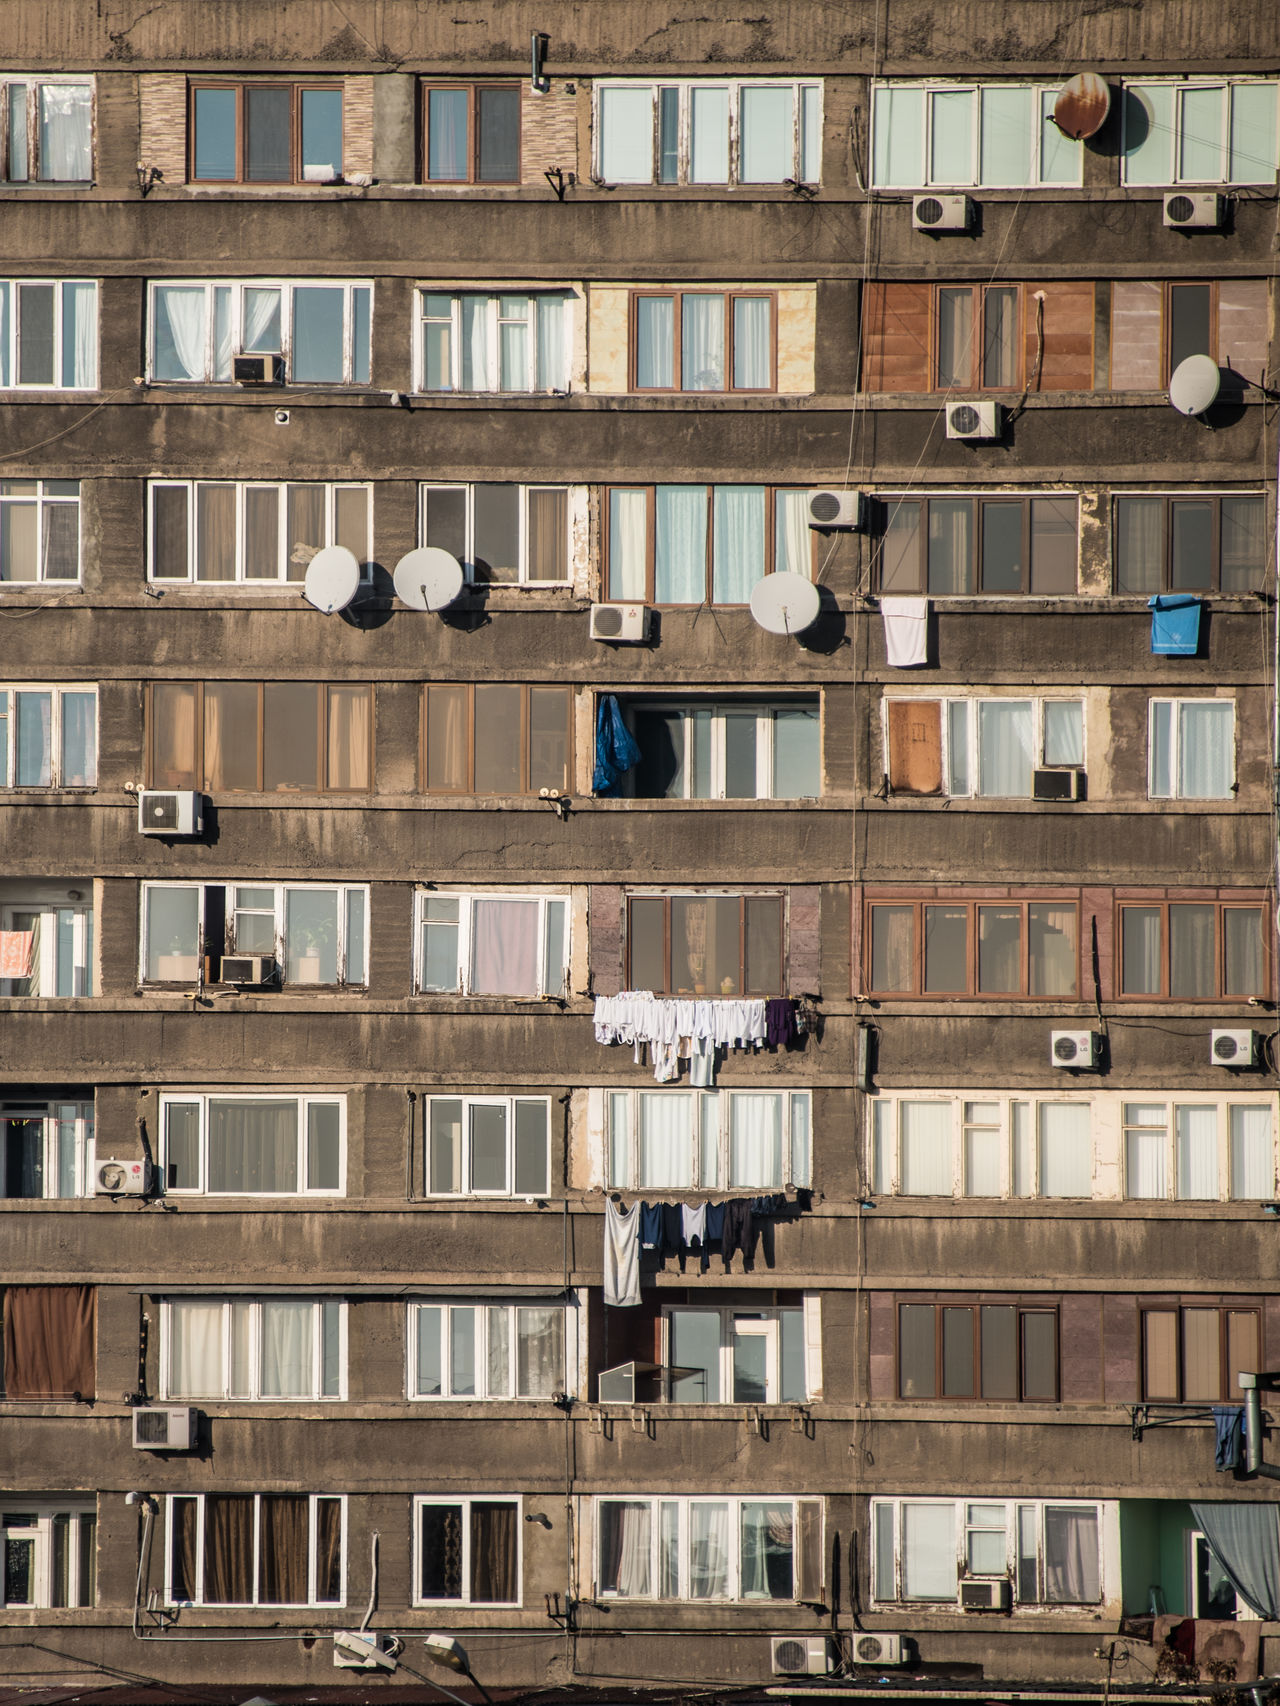 Airconditioning Apartment Buildings Architecture Building Exterior City Communist Architecture Day Façade Laundry Living Old Outdoors Plattenbau Satallite Dish Urban Windows